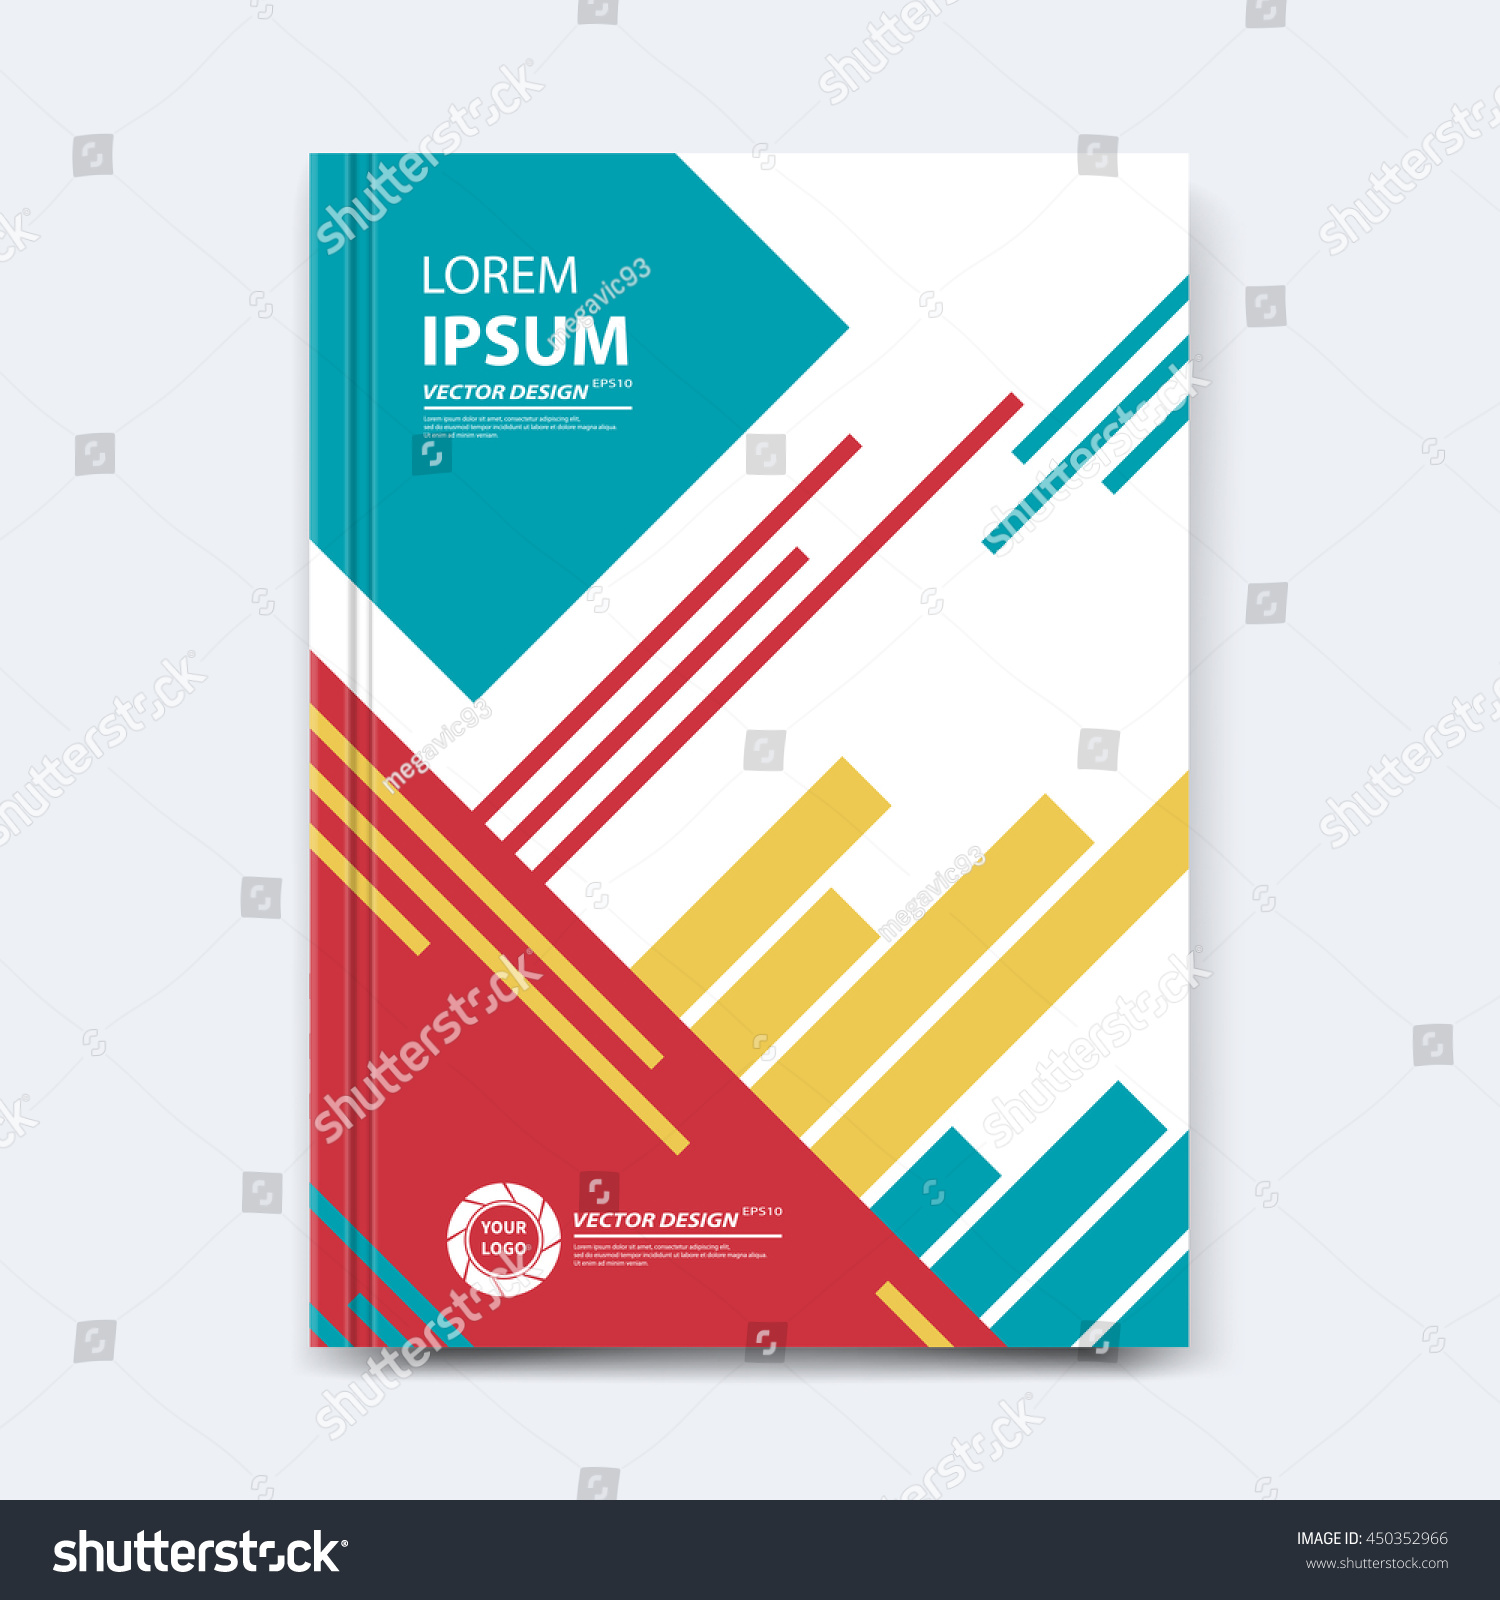 royalty abstract vector design for cover 450352966 stock abstract vector design for cover poster banner flyer business card magazine annual report title page brochure template layout or booklet